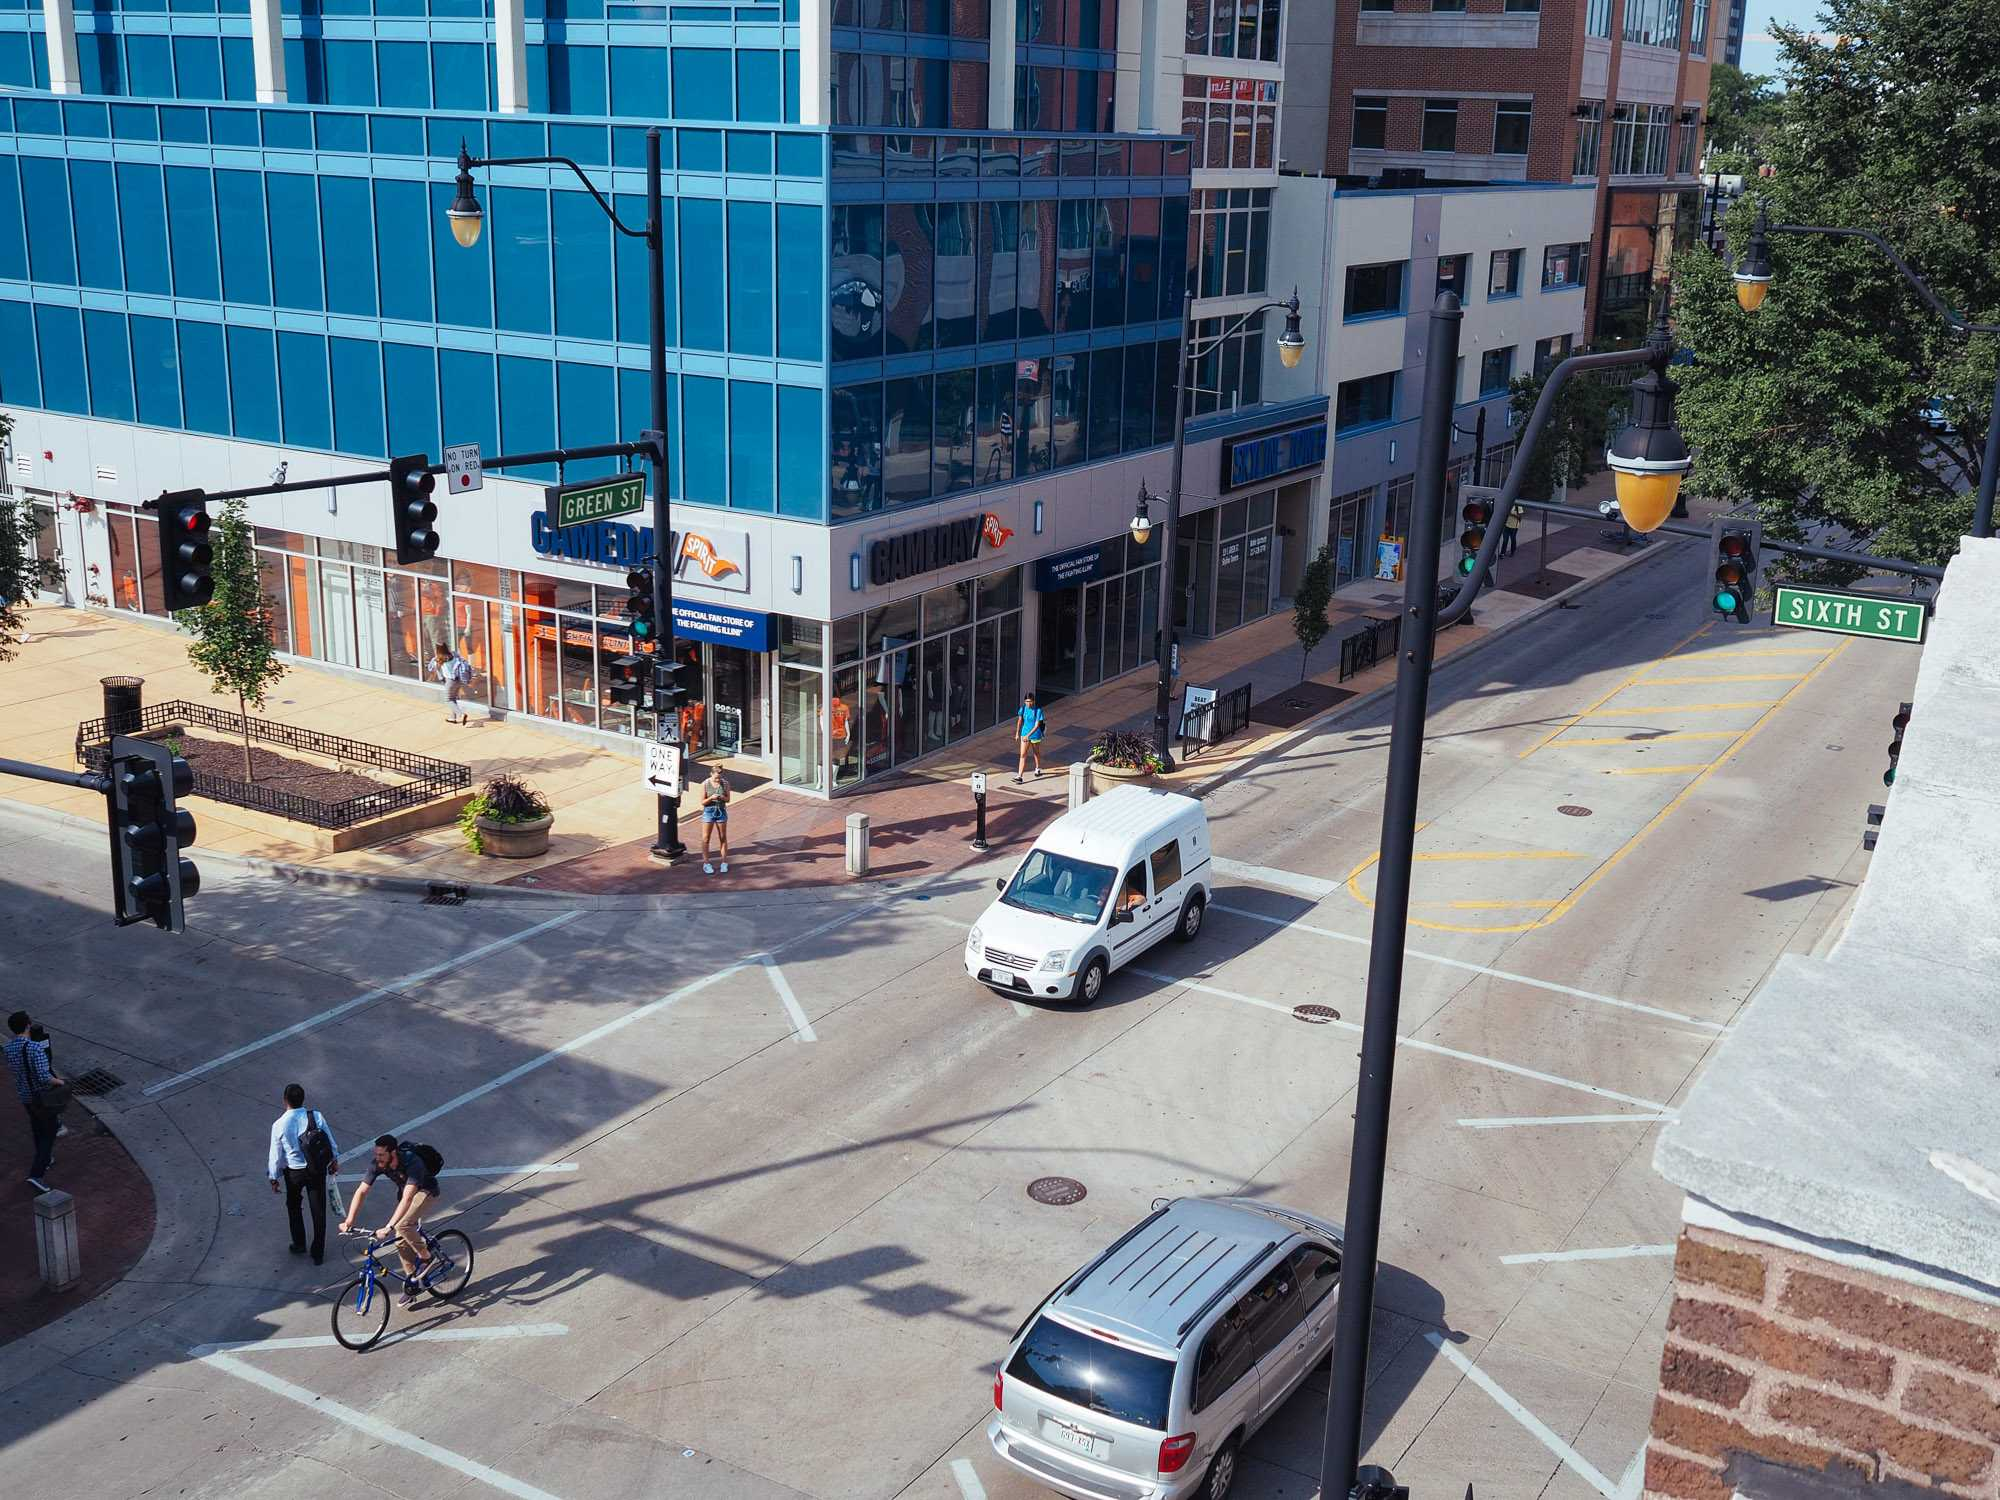 Cars pass the intersection of Sixth and Green Street while students wait to pass. Opinions editor Tyler writes about campus life during breaks and what students can look forward to when campus is much less busy.